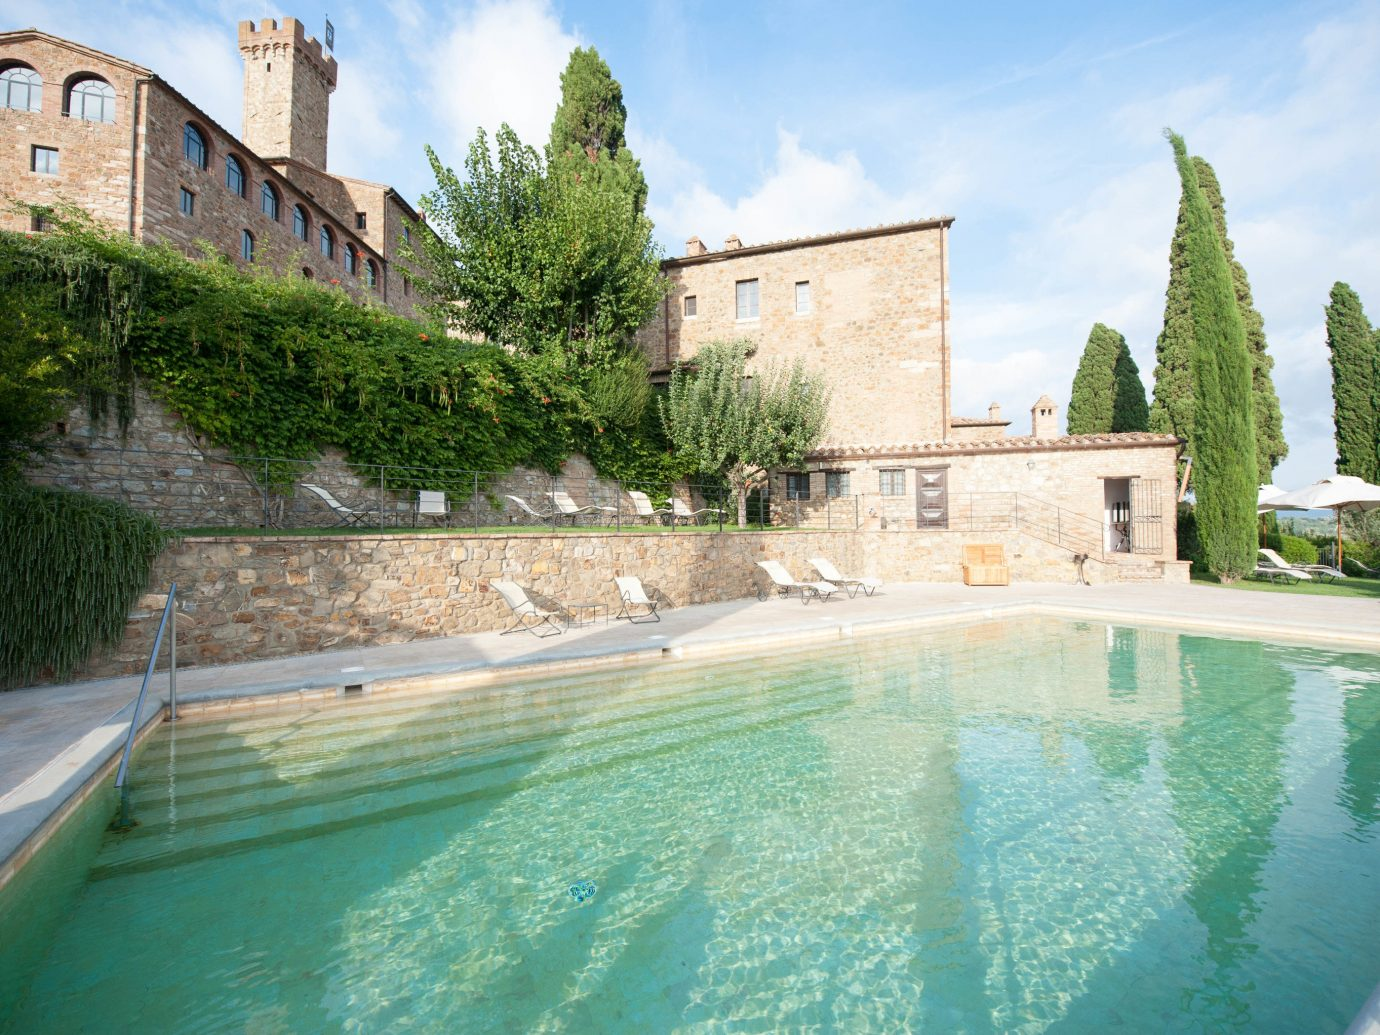 europe Hotels Italy Romance outdoor building swimming pool property estate vacation Villa reflecting pool mansion Pool backyard waterway stone